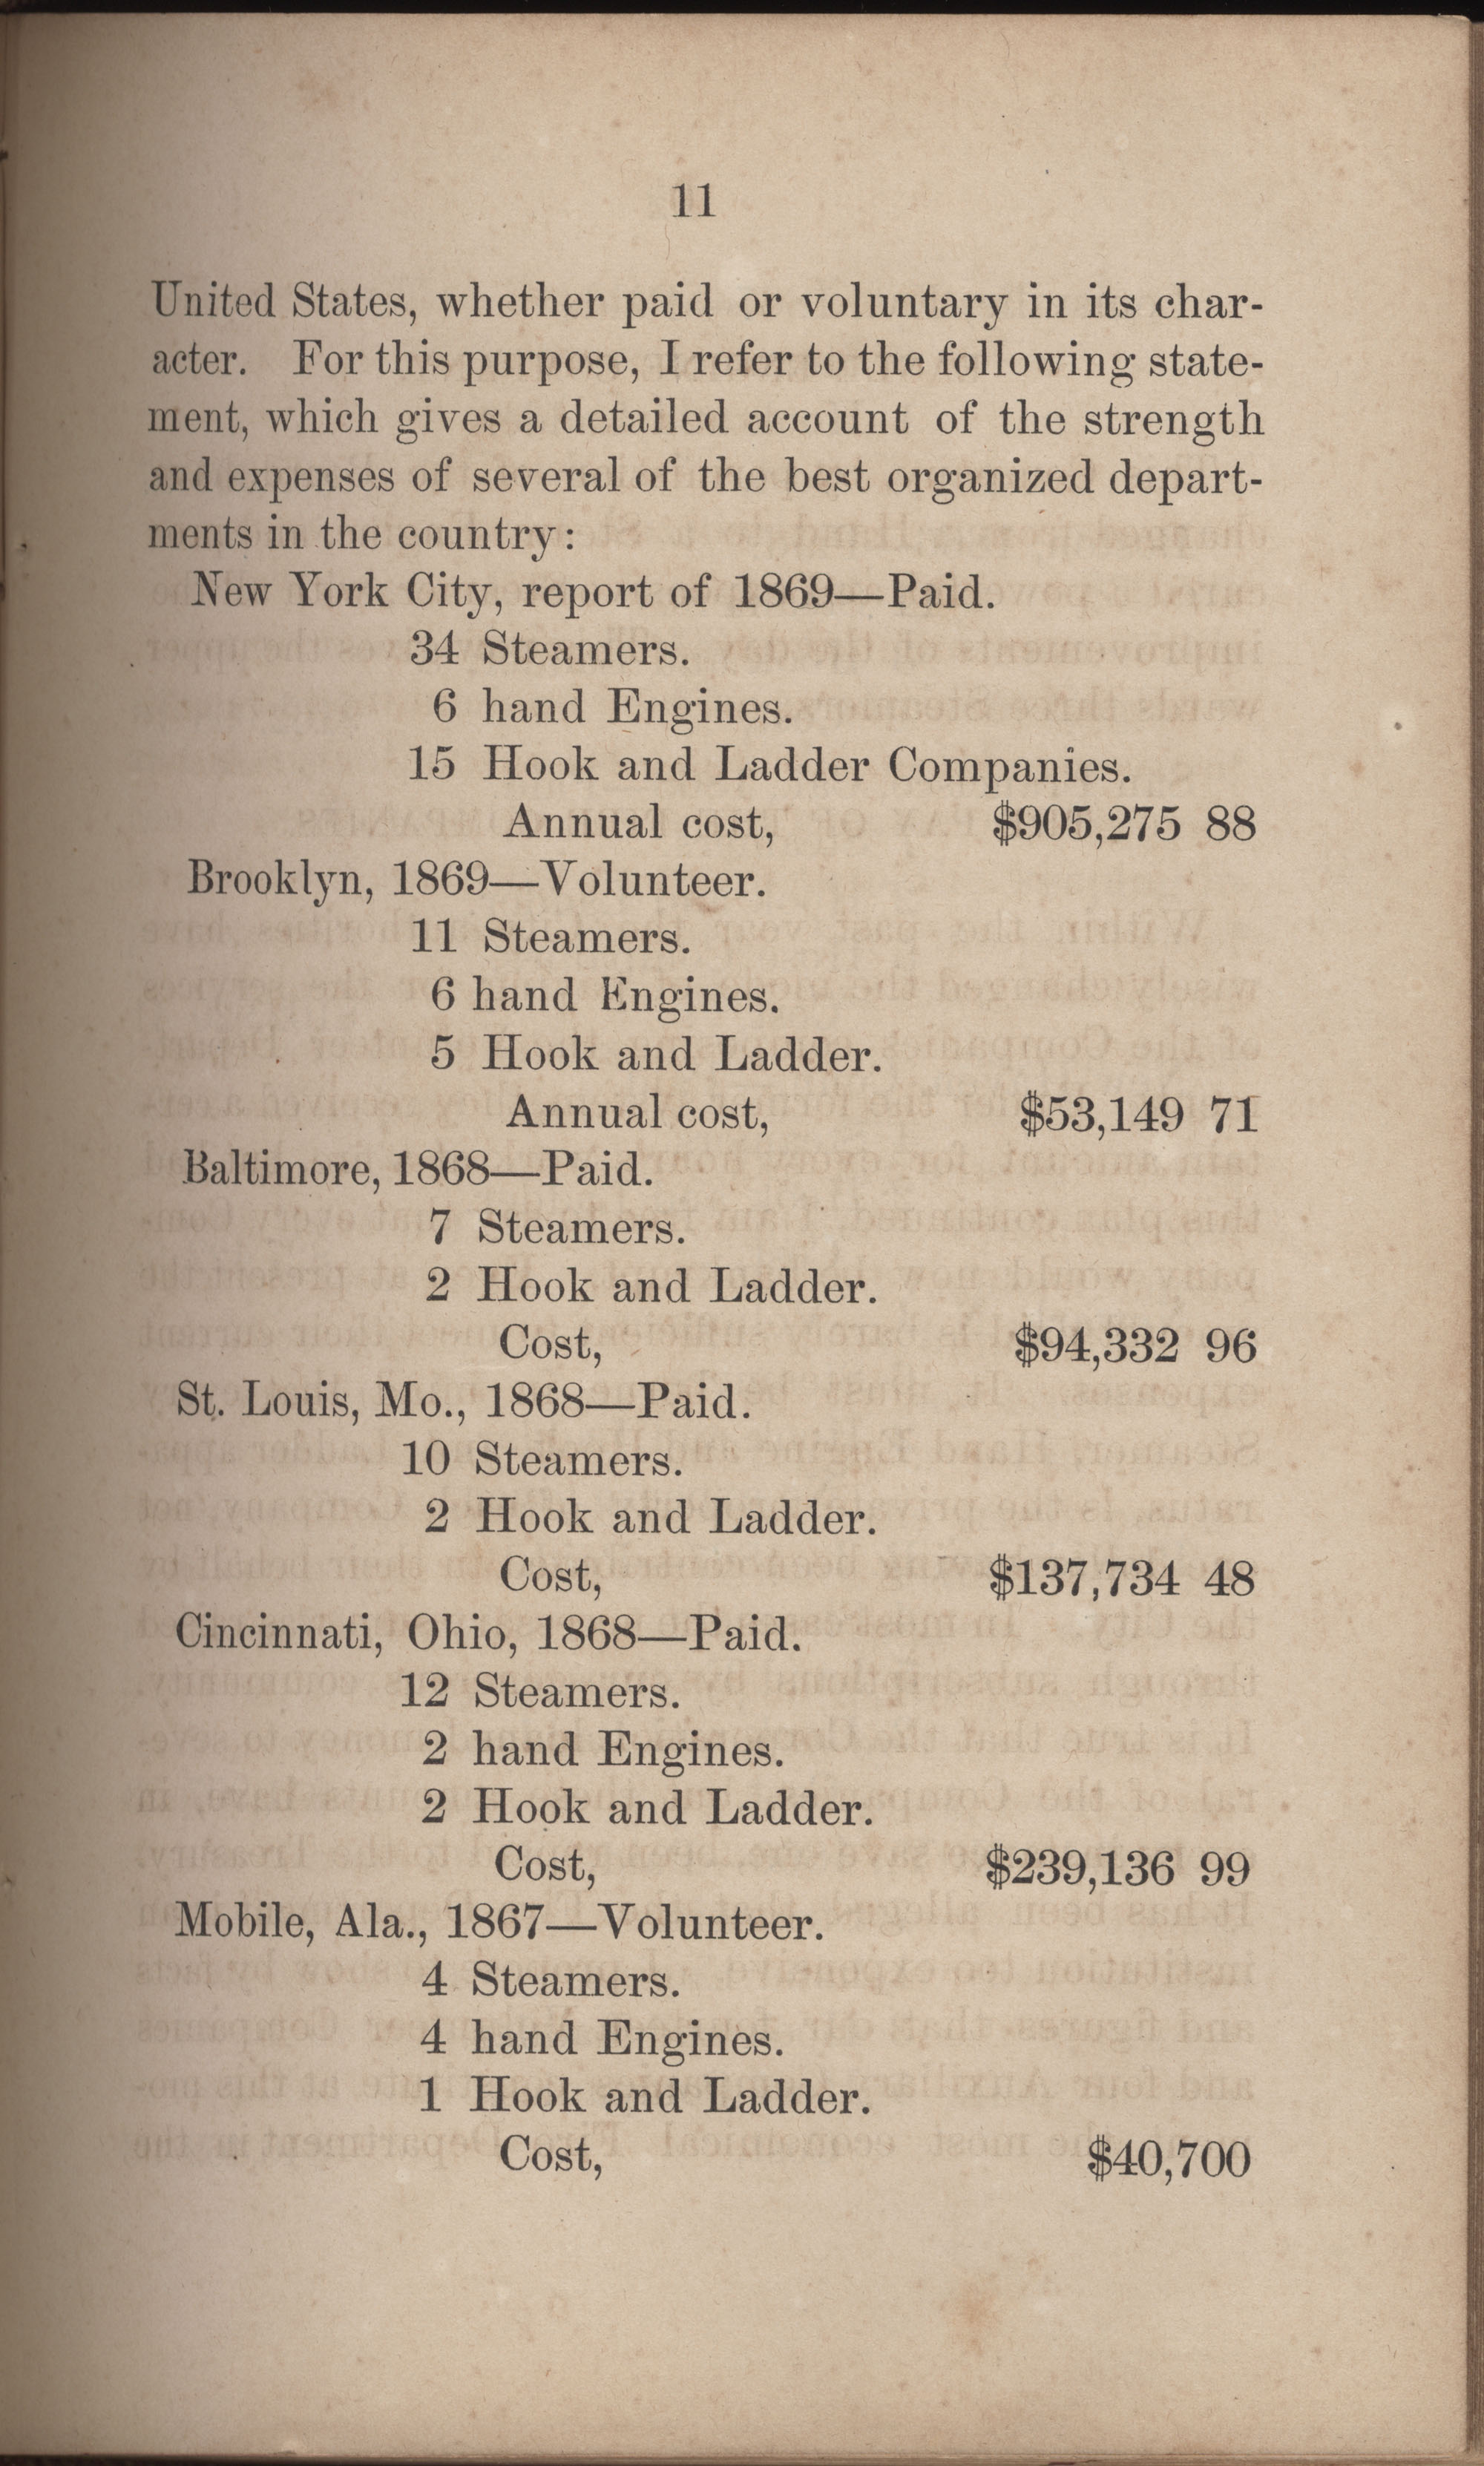 Annual Report of the Chief of the Fire Department of the City of Charleston, page 238